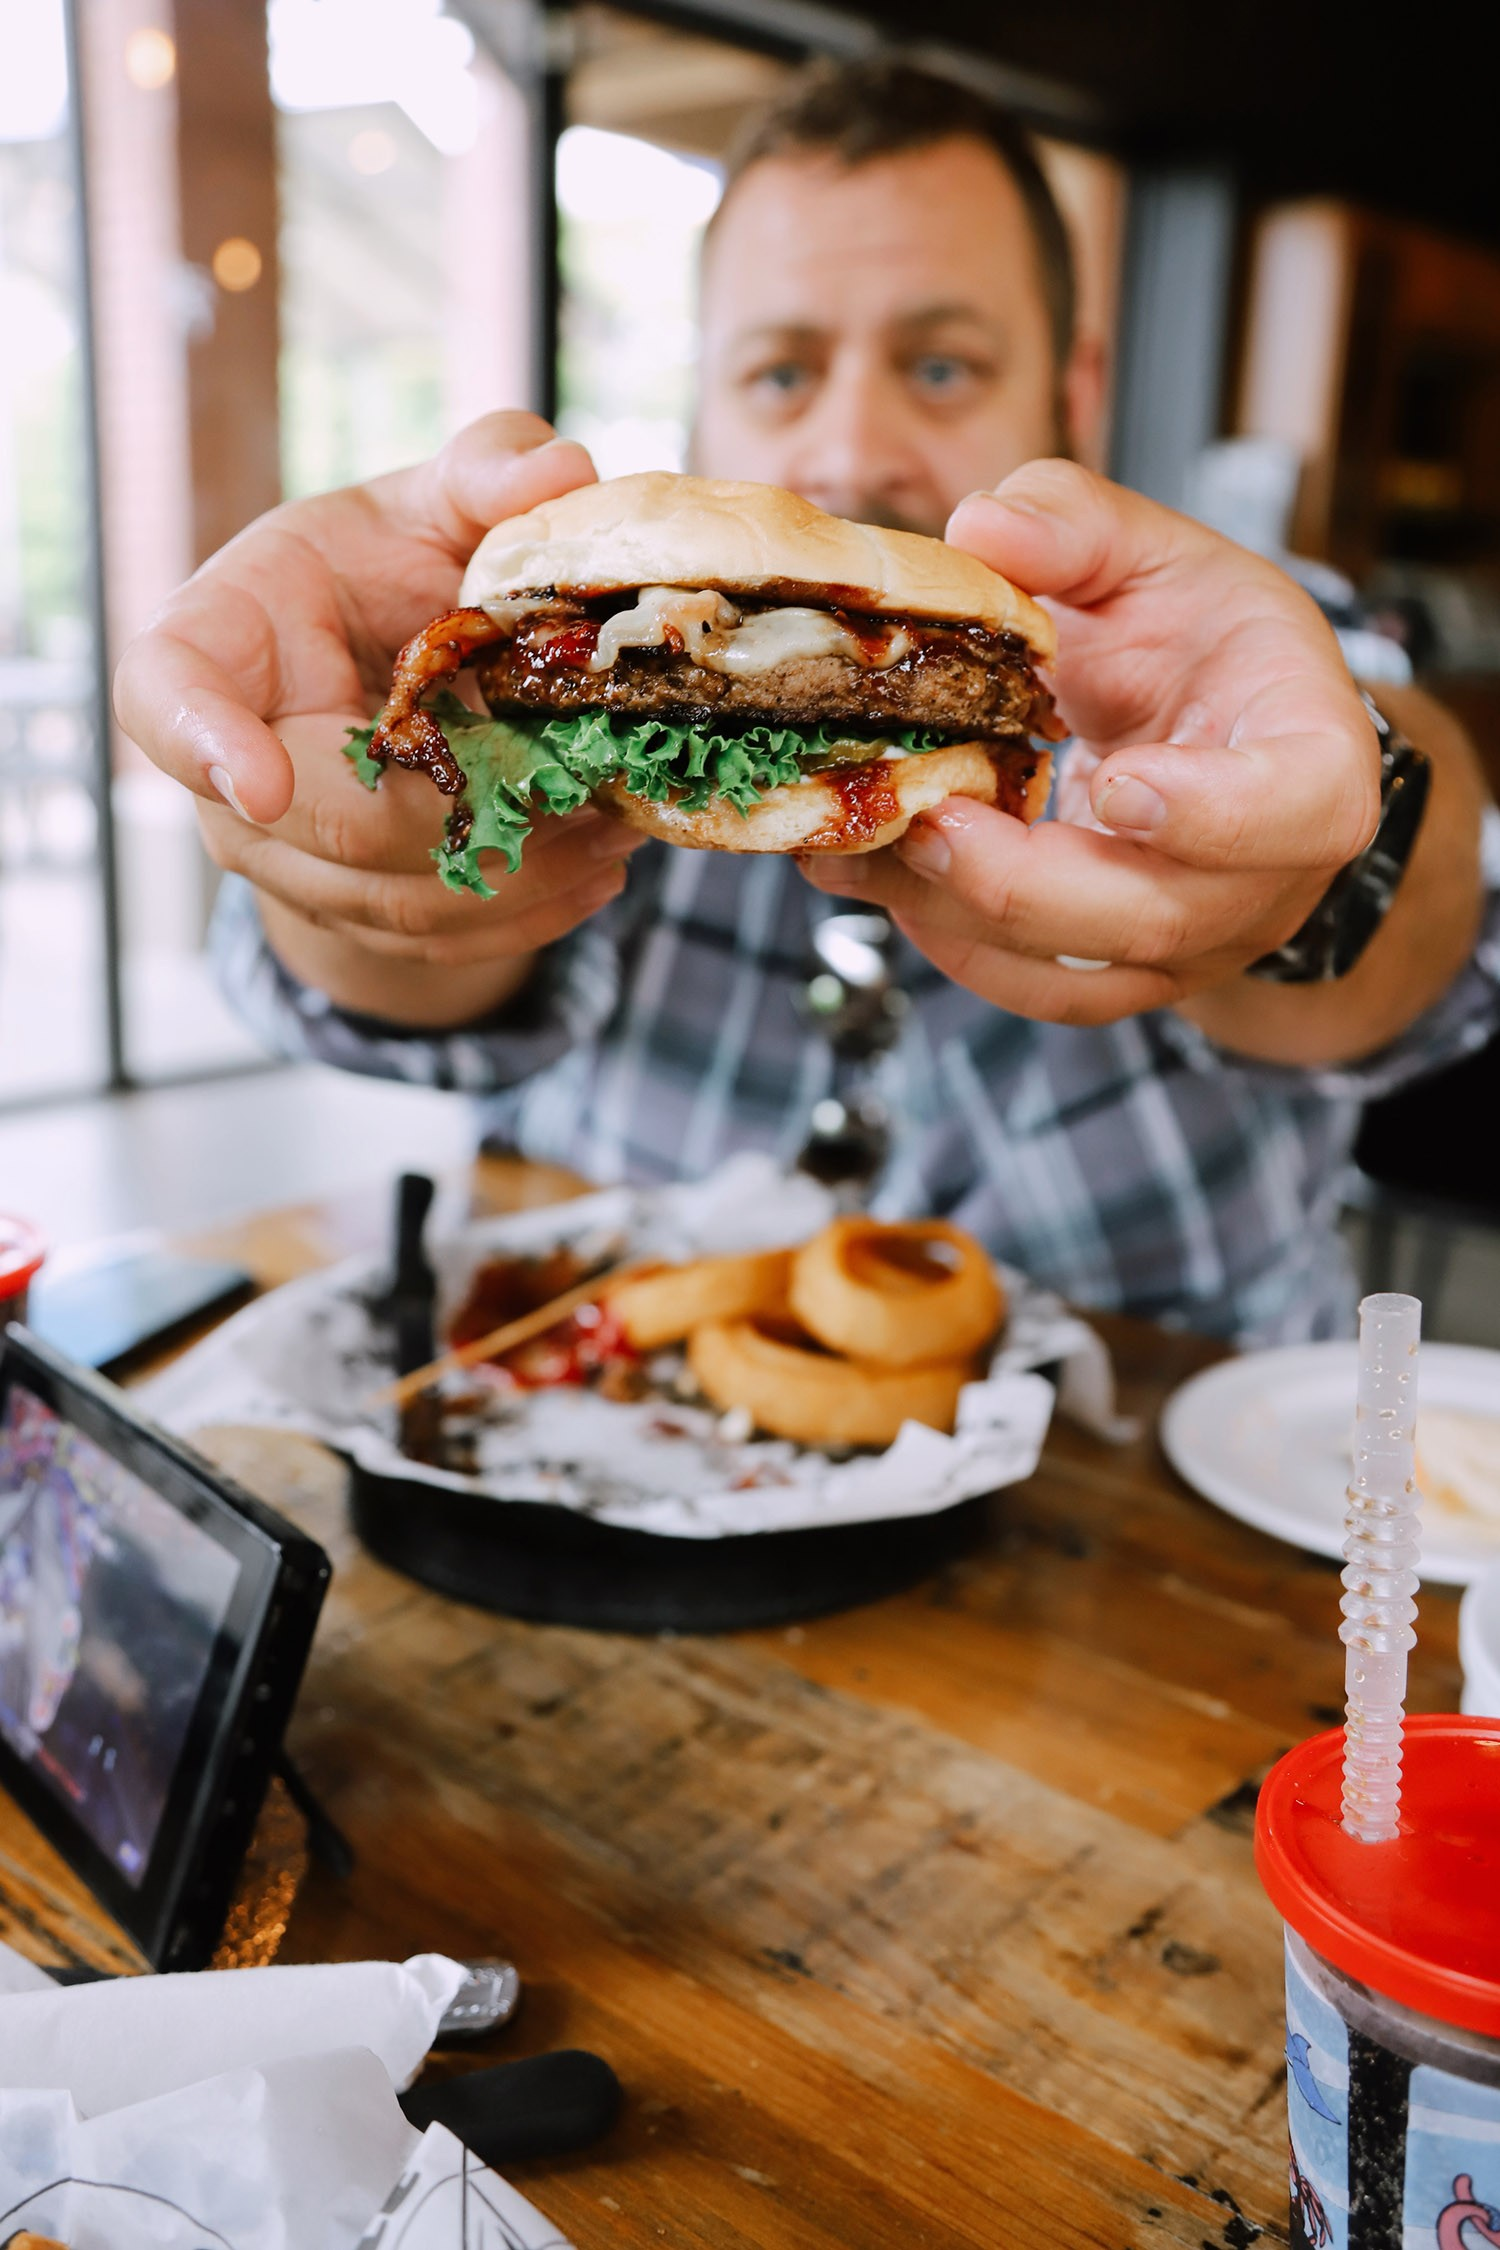 Spectacular Lake County, Florida Staycation Ideas for the Family! Bacon Brie Burger at Puddle Jumpers | Lake County by popular Florida blog, Fresh Mommy Blog: image of a man holding a brie burger at Puddle Jumpers.